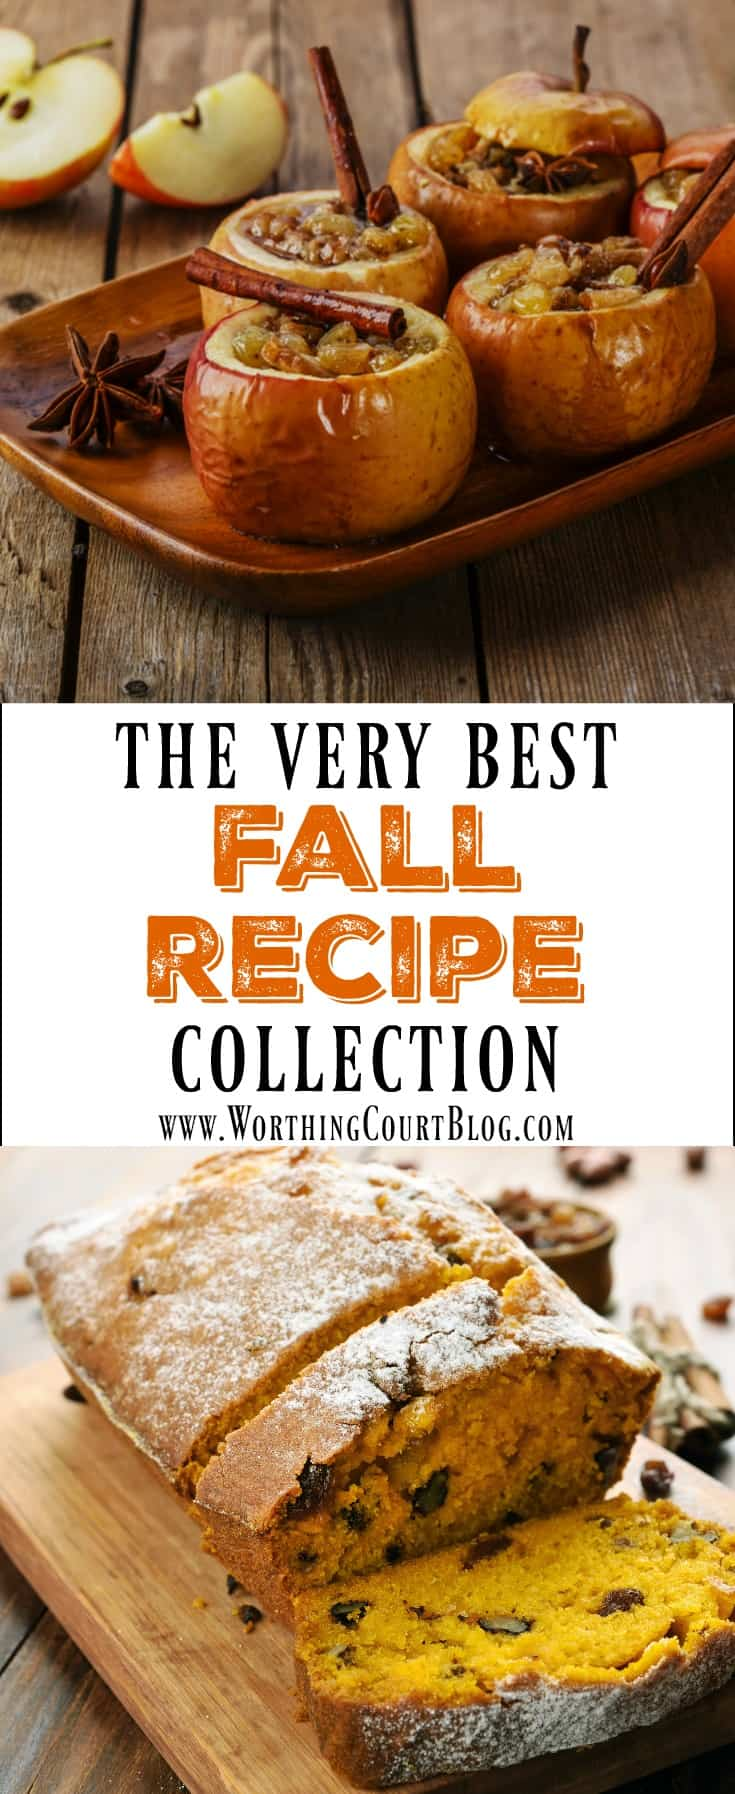 The Very Best Fall Recipe Collection || Worthing Court